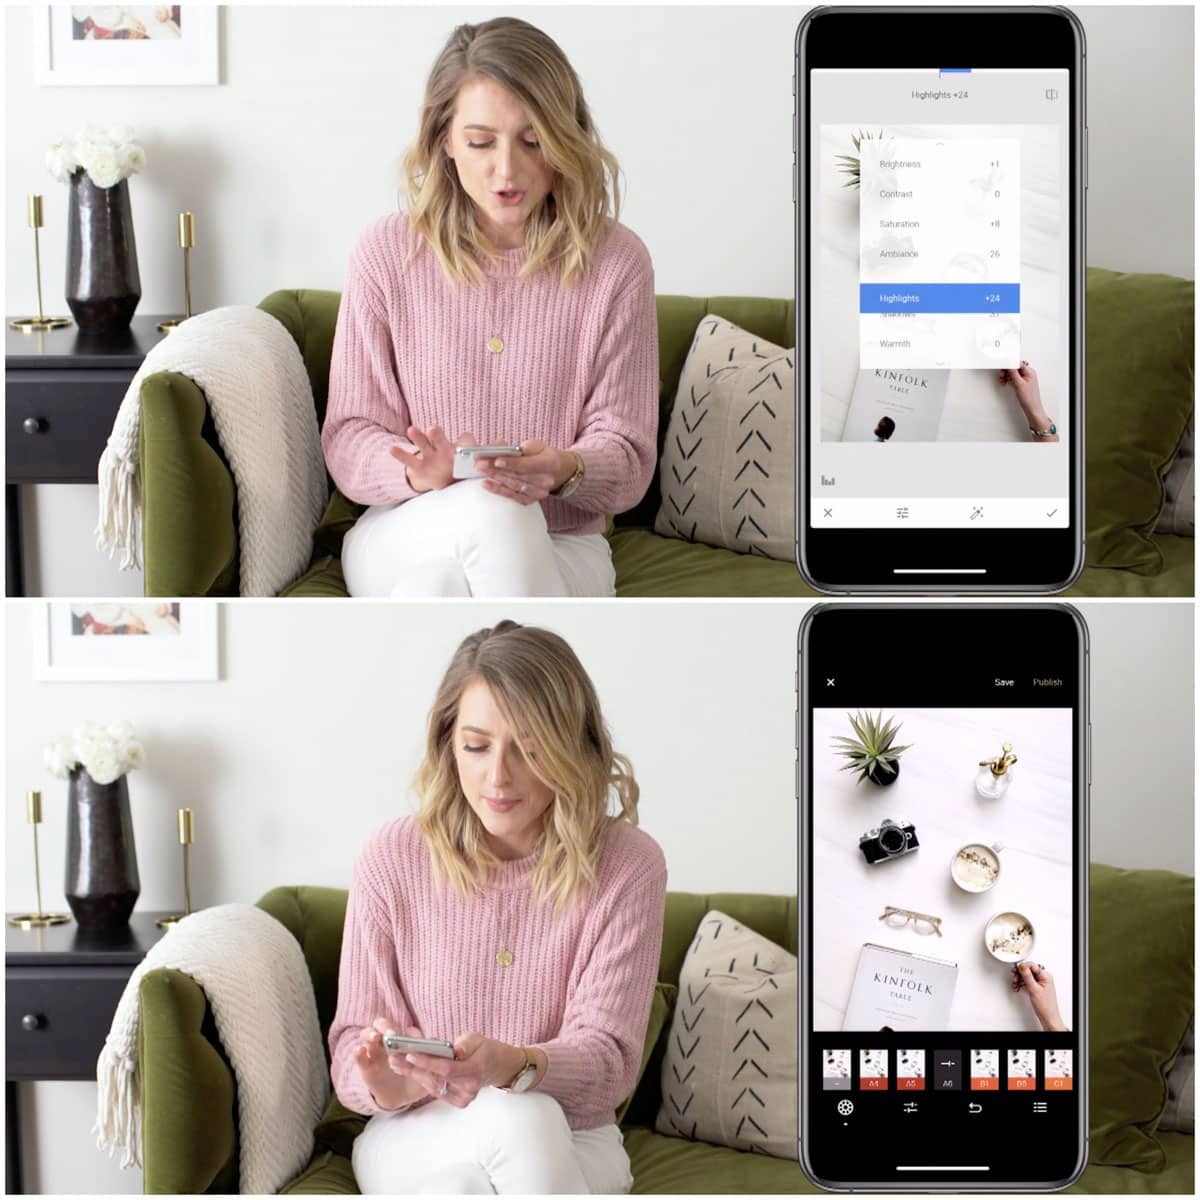 A collage of two images showing a woman using her phone to edit images.